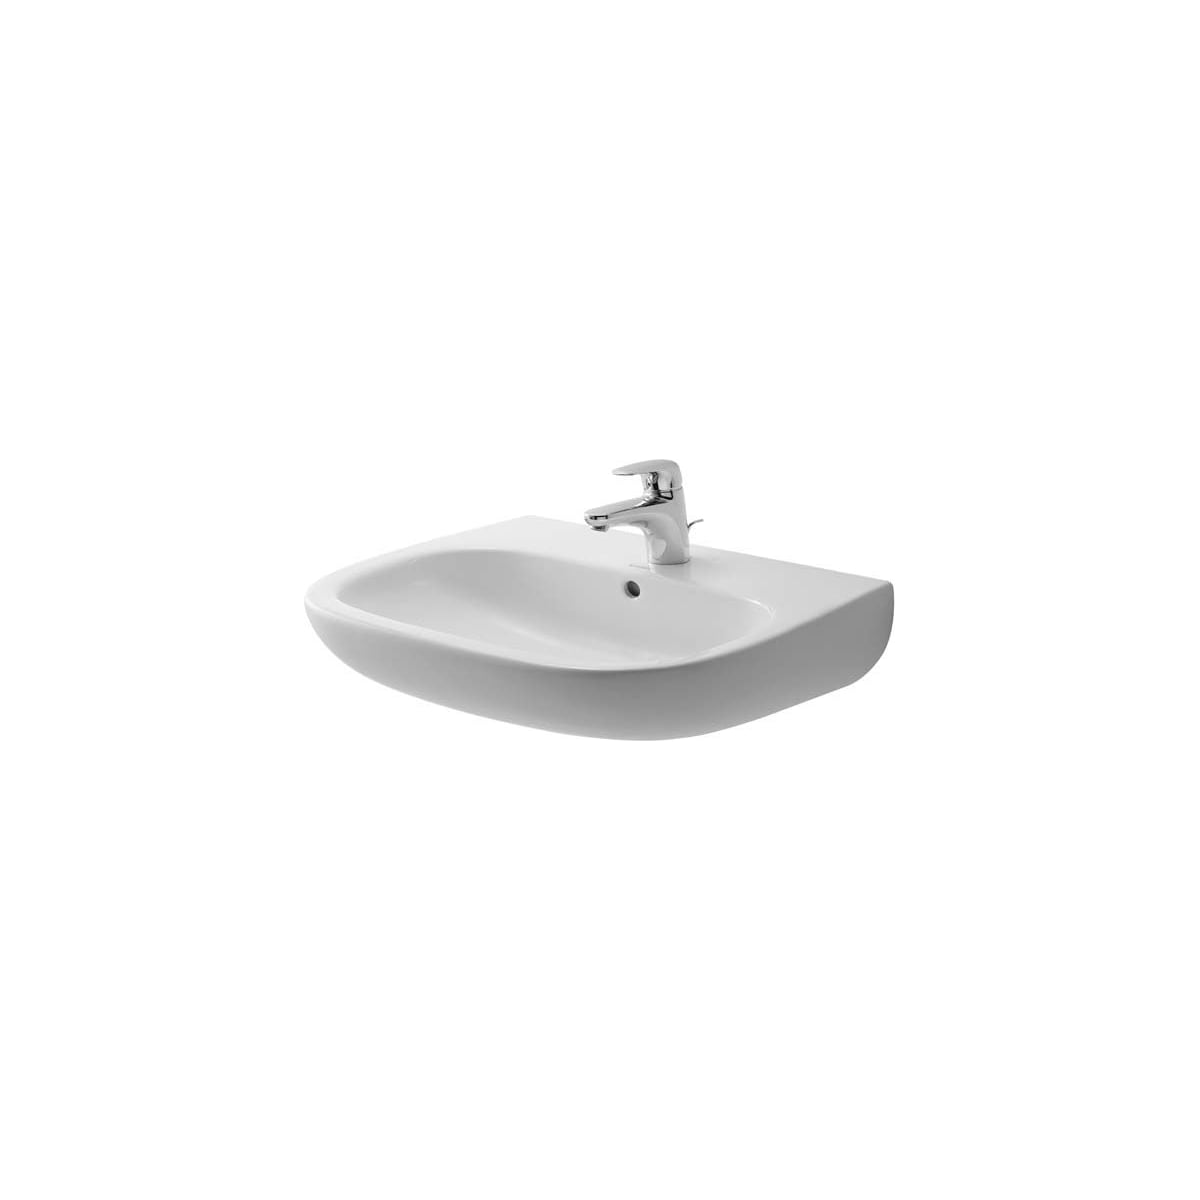 Duravit 23106000002 White Glazed Underside D Code 23 5 8 Specialty Ceramic Wall Mounted Bathroom Sink With Overflow And 1 Faucet Hole Faucet Com